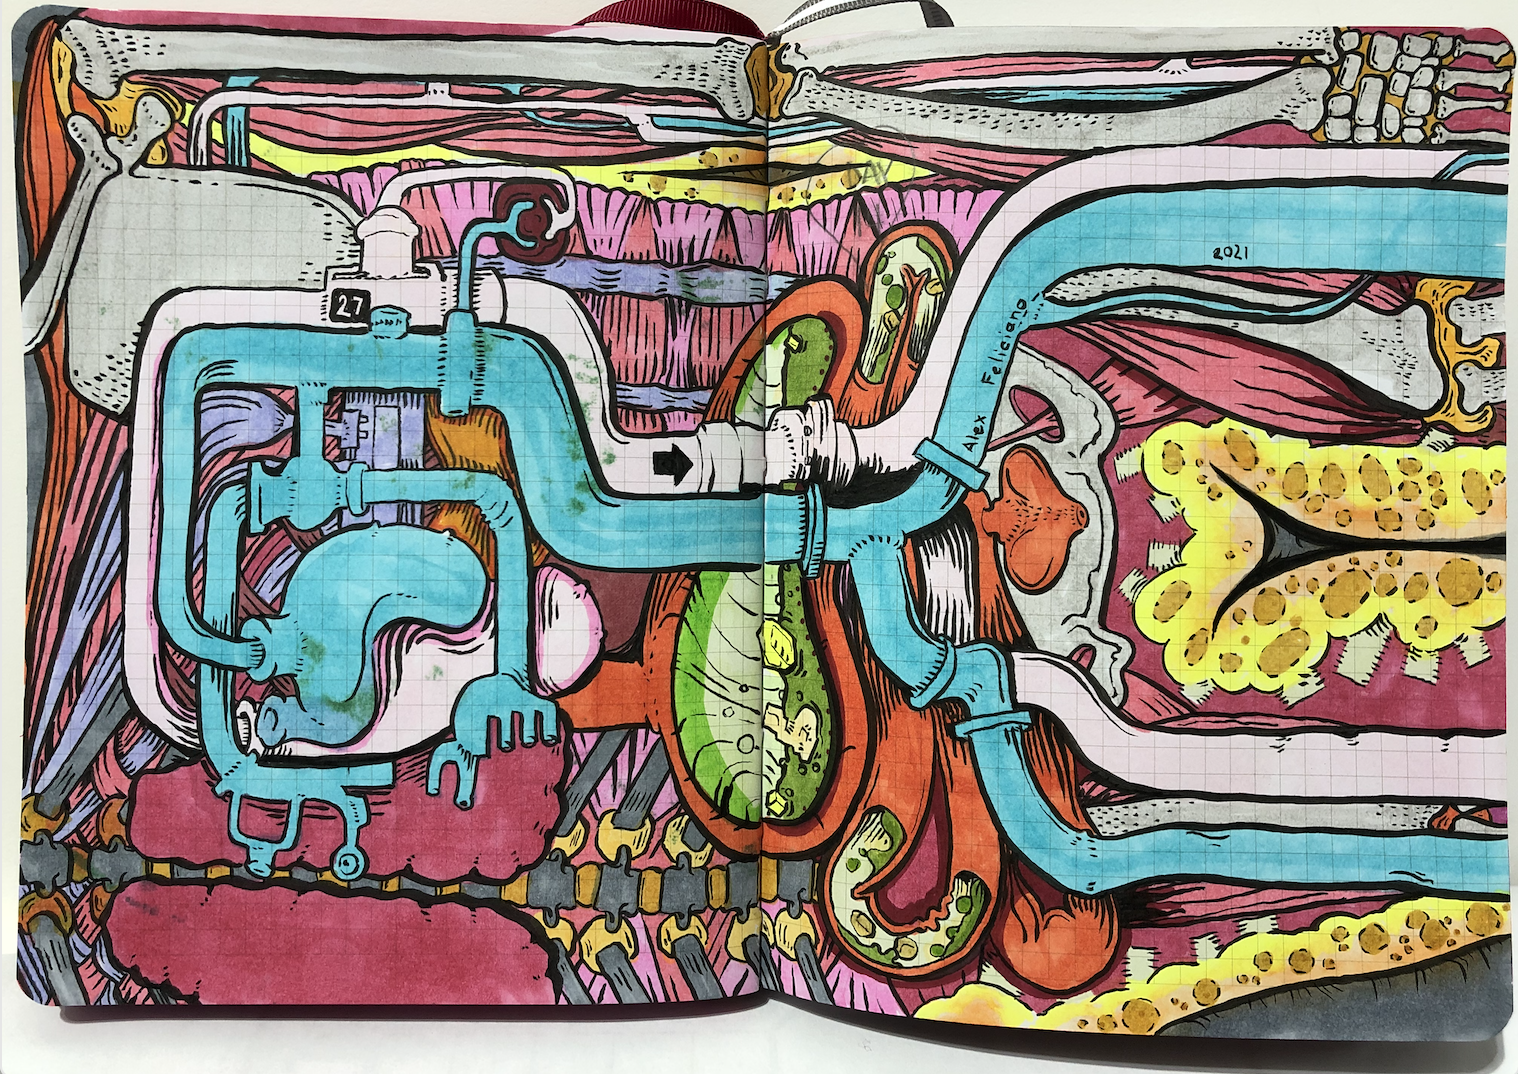 Illustration of the internal human body, Digestive System